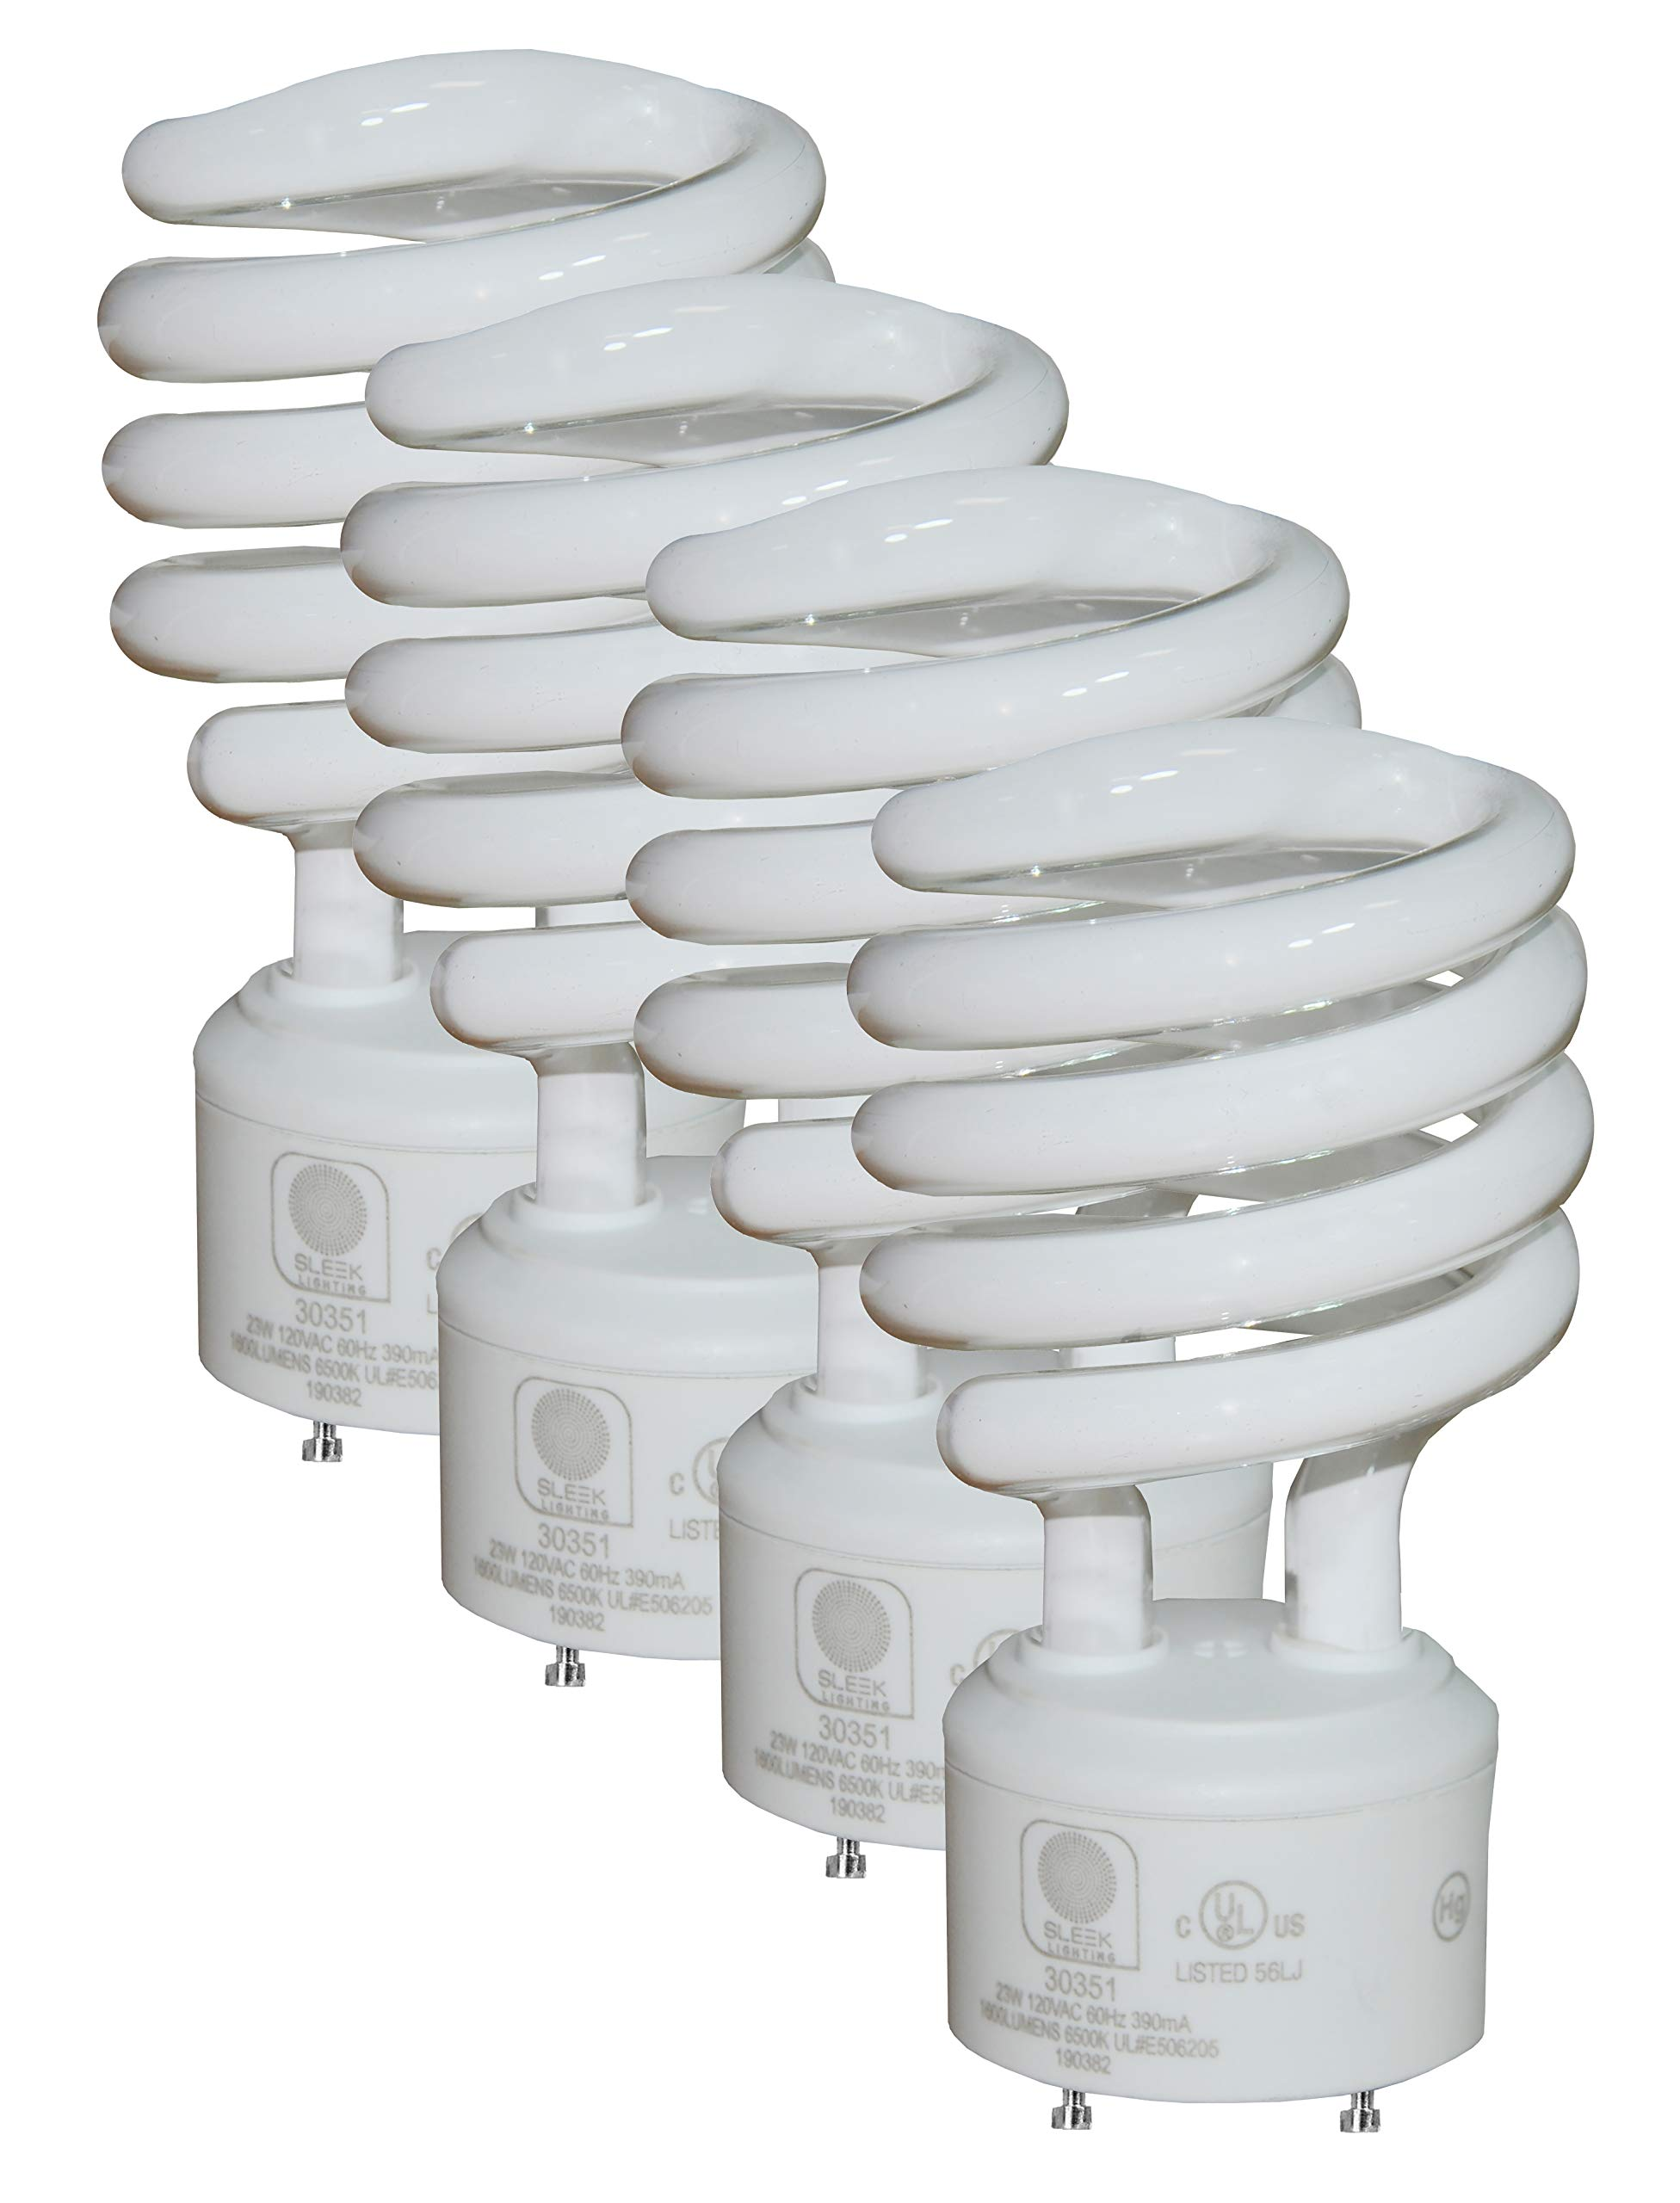 SleekLighting GU24 Base 23Watt UL Listed T2 Mini Twist Spiral Two Prong Twist CFL Light Bulb 2 Pin 6500K 1600lm 10,000Hr Life- 4pack